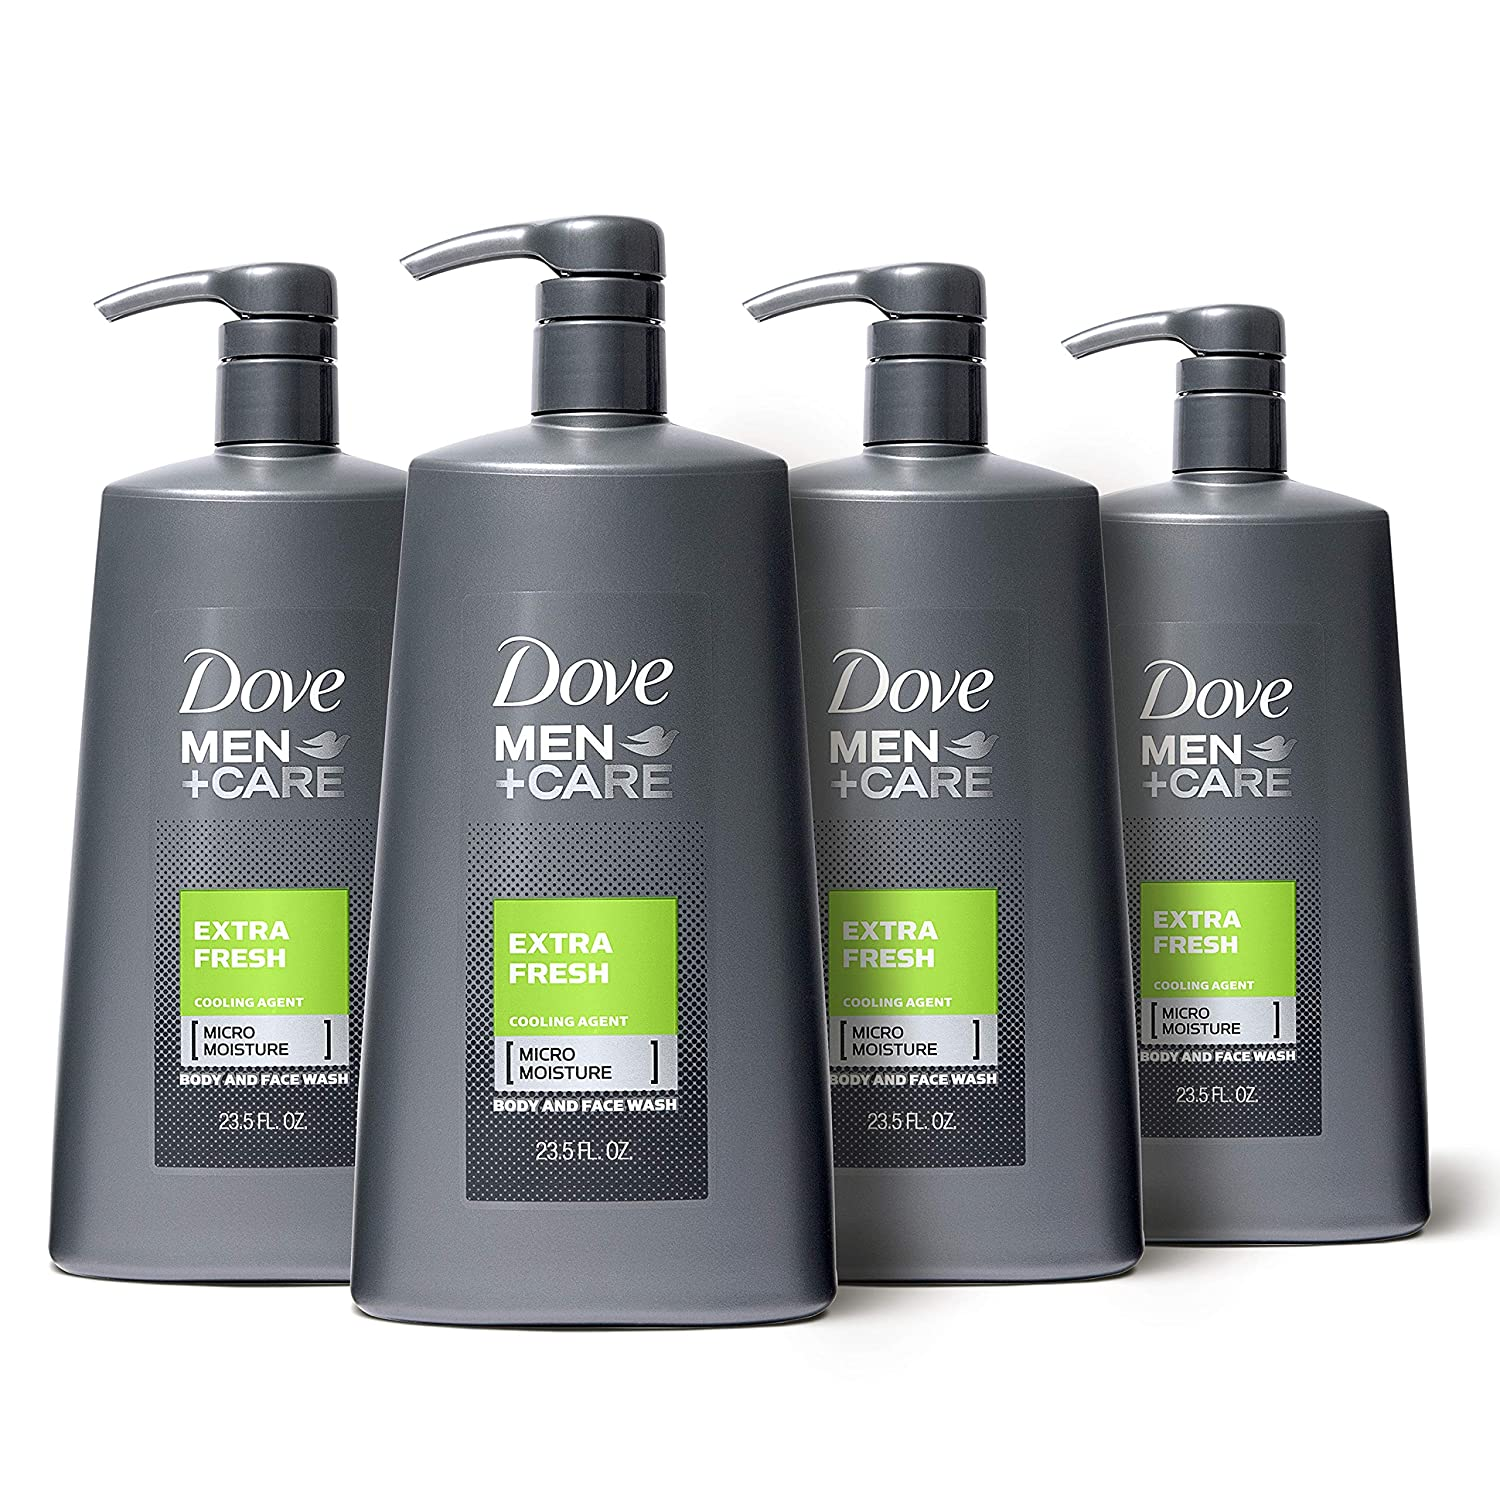 Amazon Com Dove Men Care Body And Face Wash Pump Extra Fresh 23 5 Oz For Dry Skin Effectively Washes Away Bacteria While Nourishing Your Skin Pack Of 4 Beauty